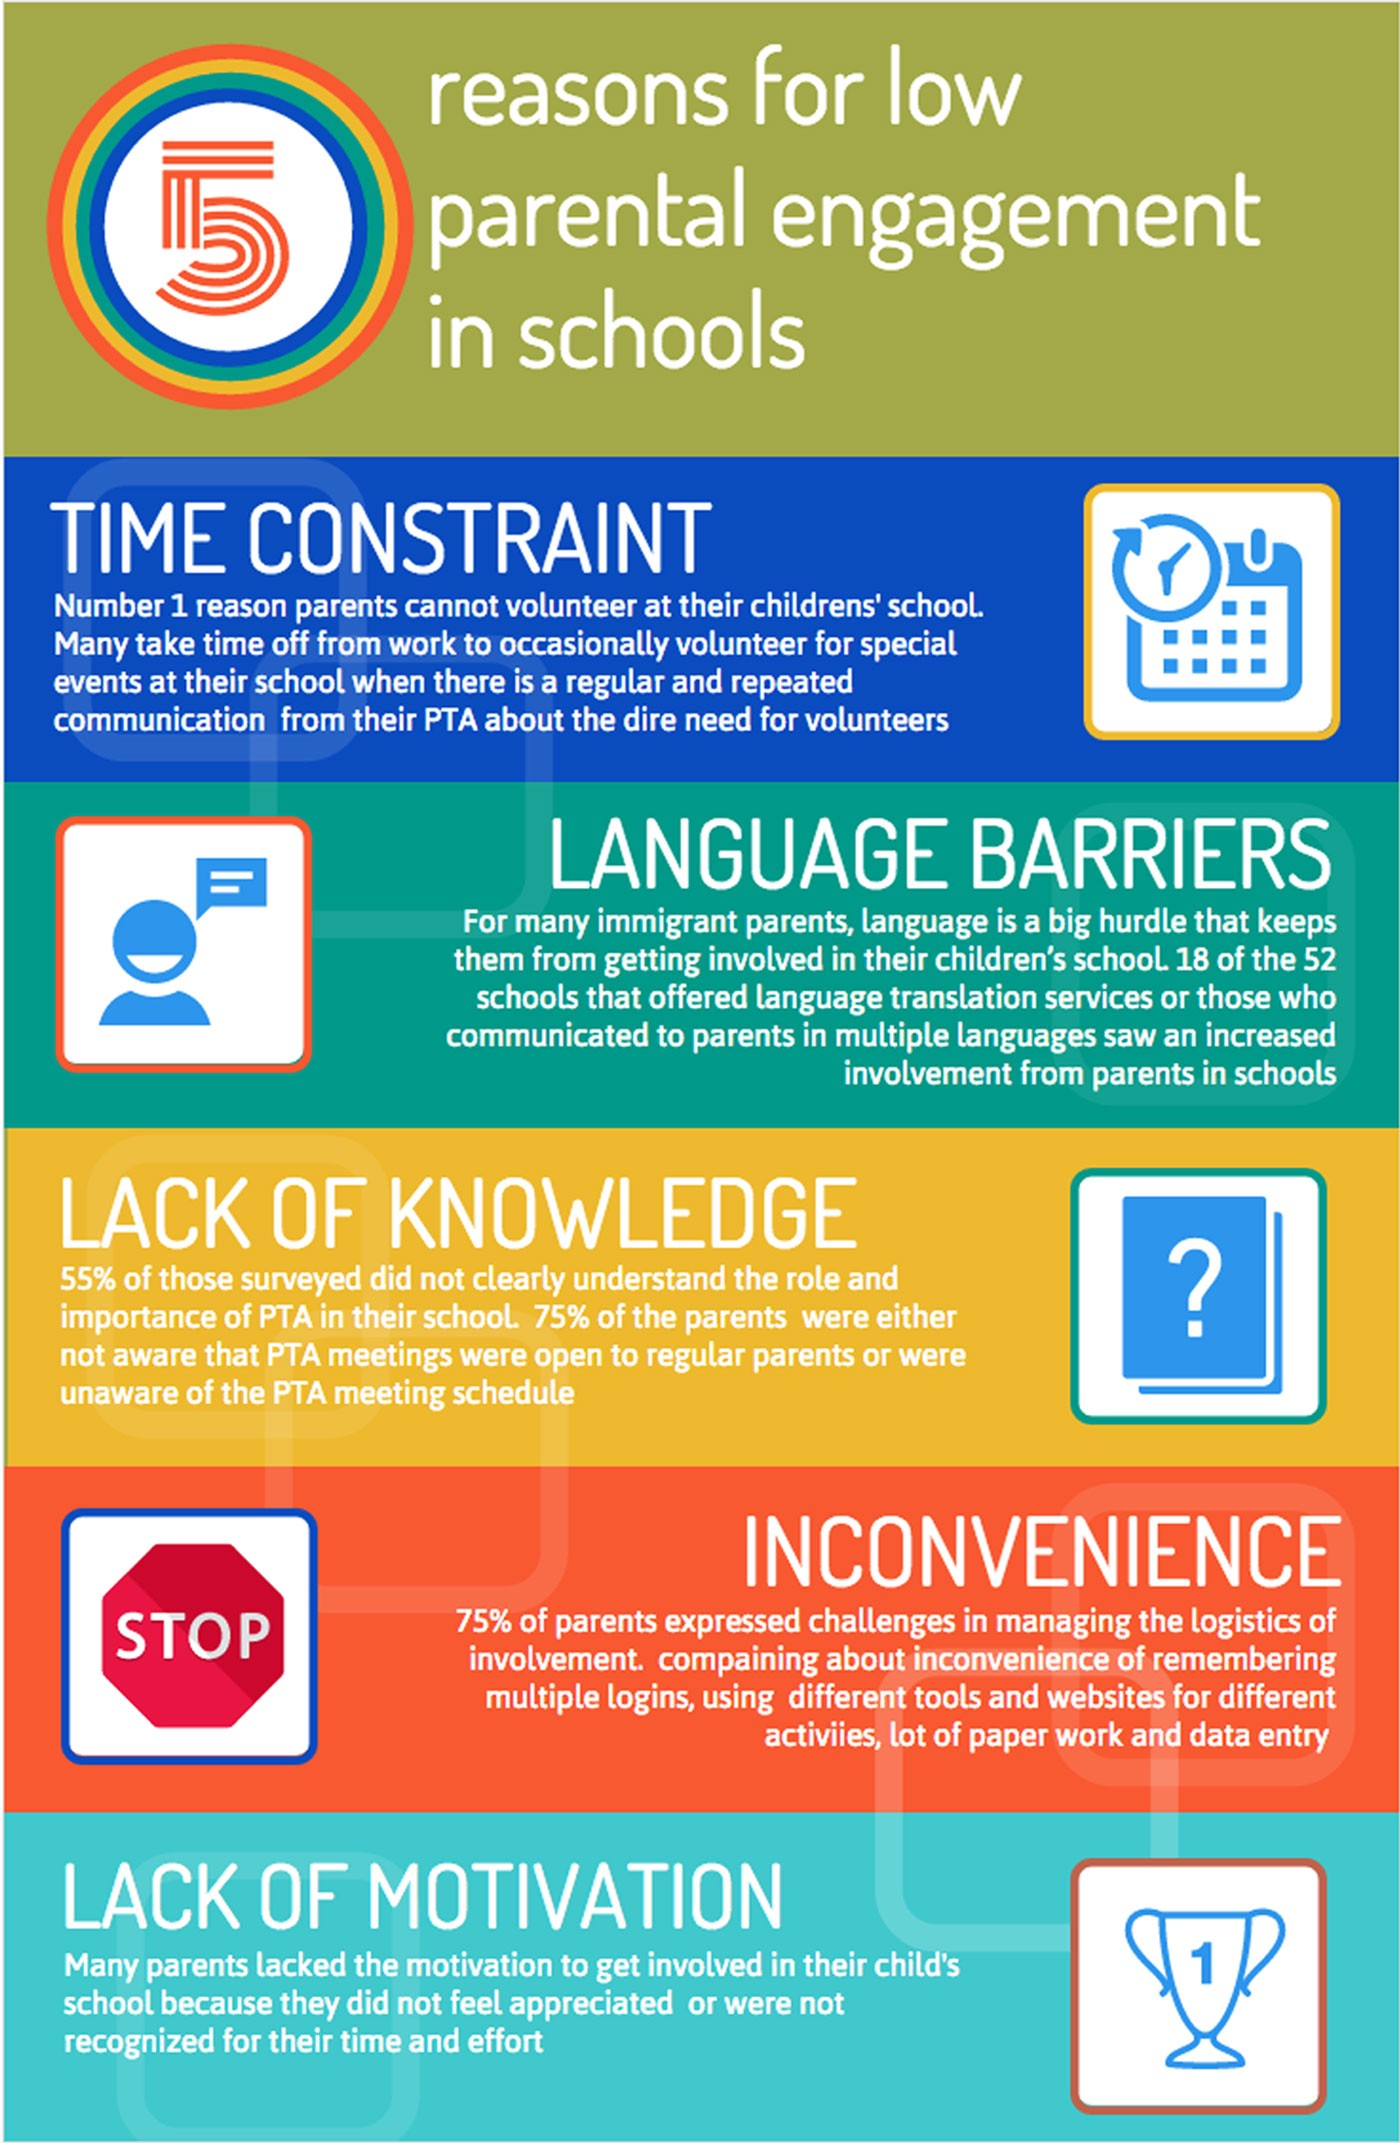 Parents Really Need Time Off When Their >> Barriers To Parental Involvement In Schools And What Ptas Can Do